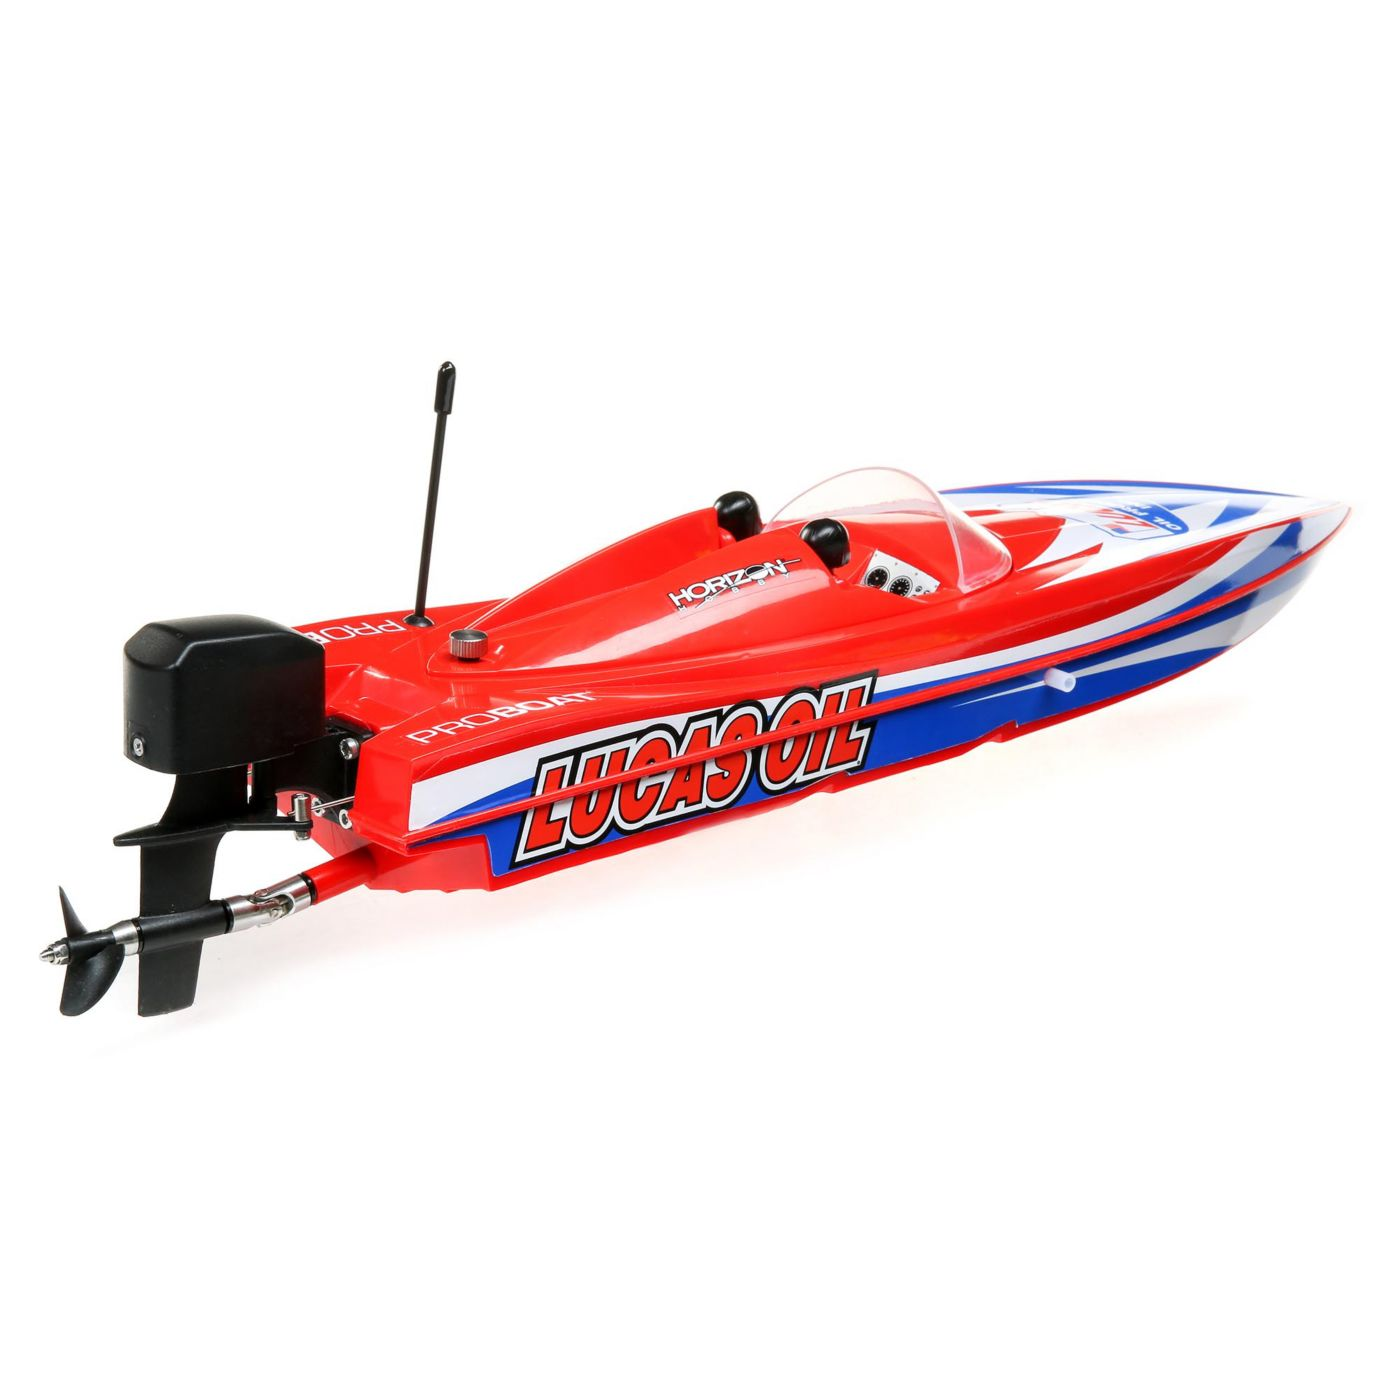 Pro Boat Power Boat Racer - Rear